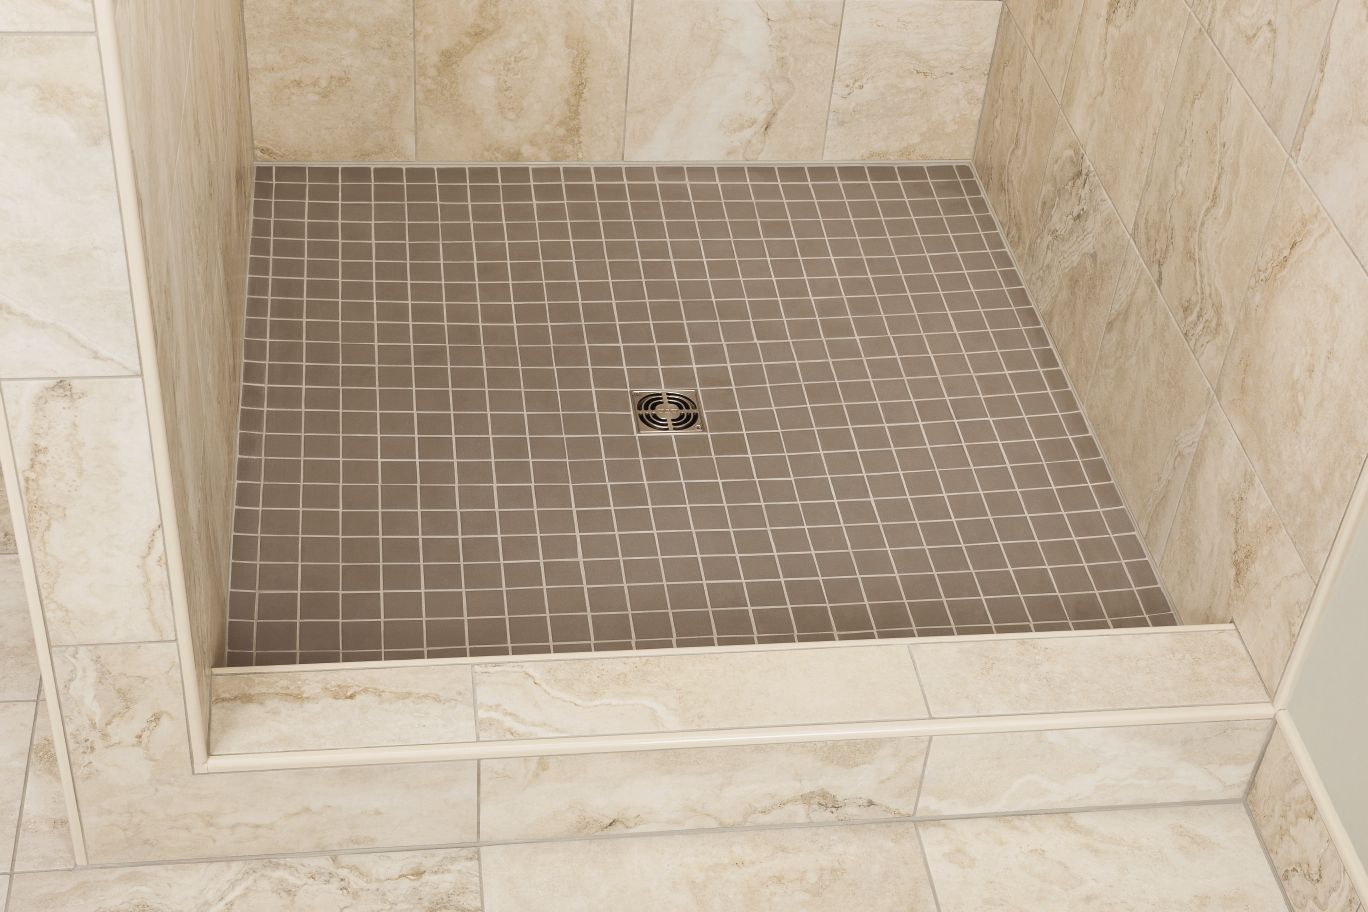 Schluter®-KERDI-SHOWER-SC | Prefabricated Substrates ...